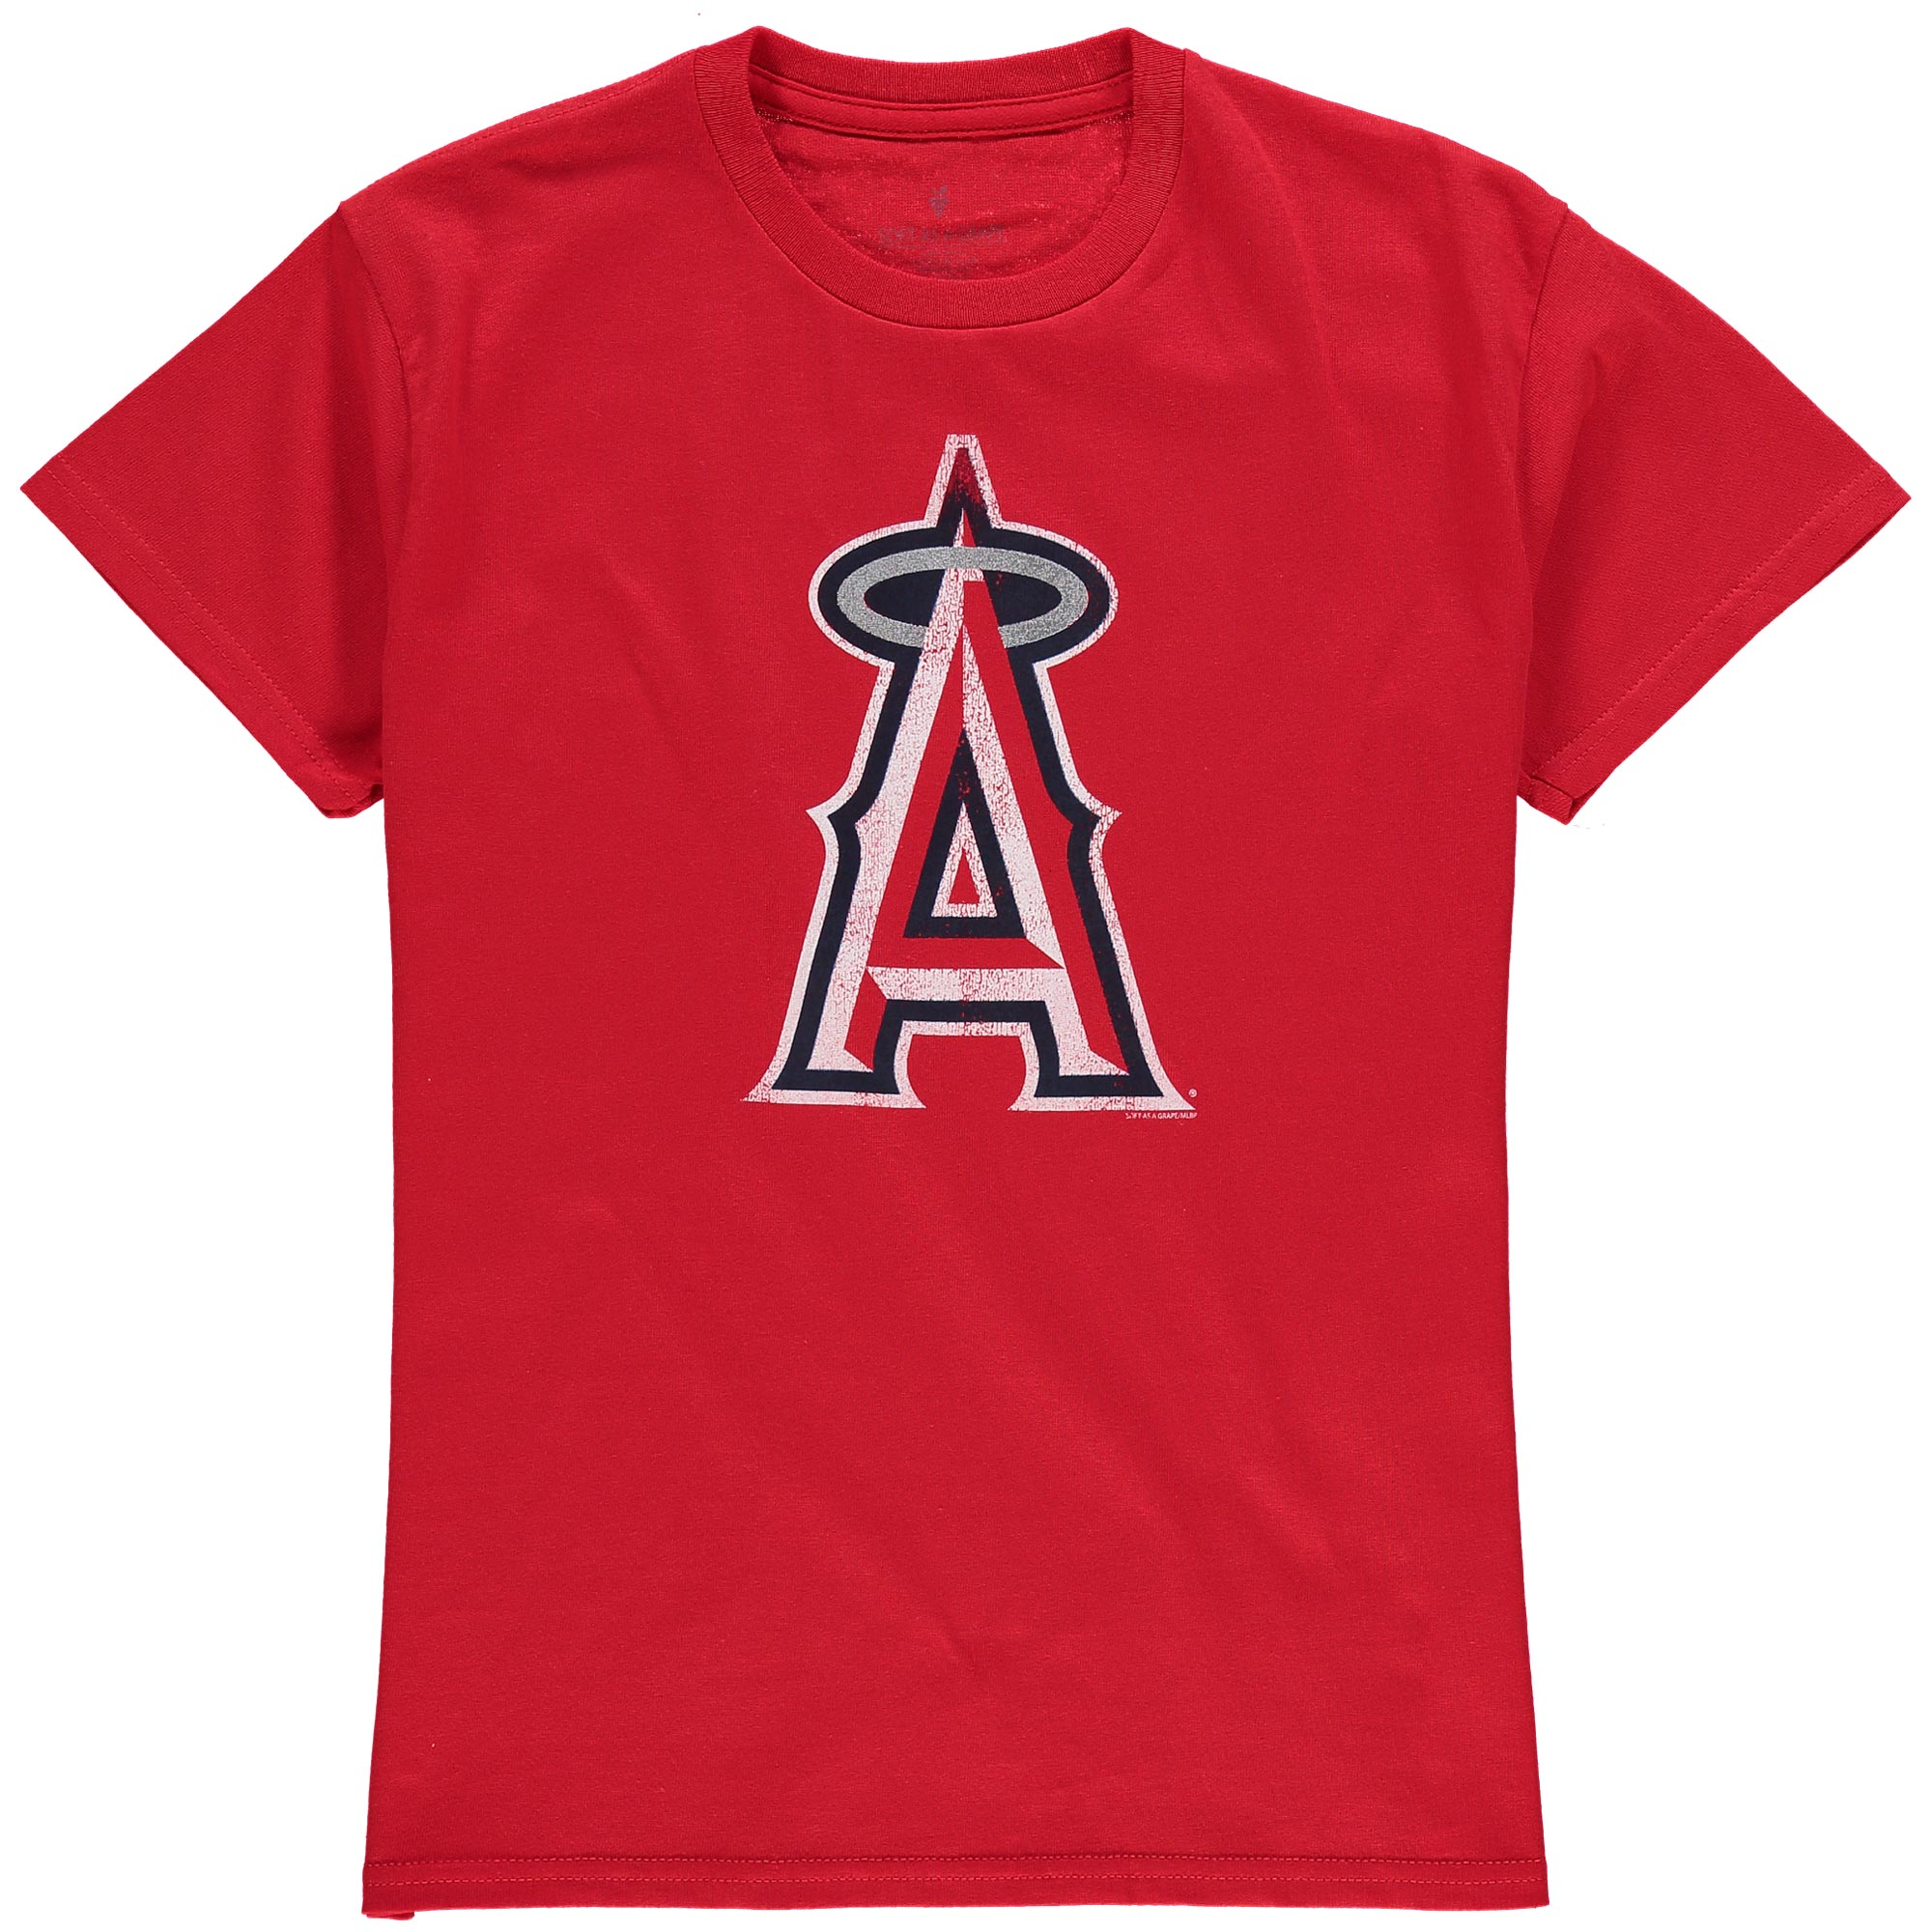 Los Angeles Angels Youth Distressed Logo T-Shirt - Red